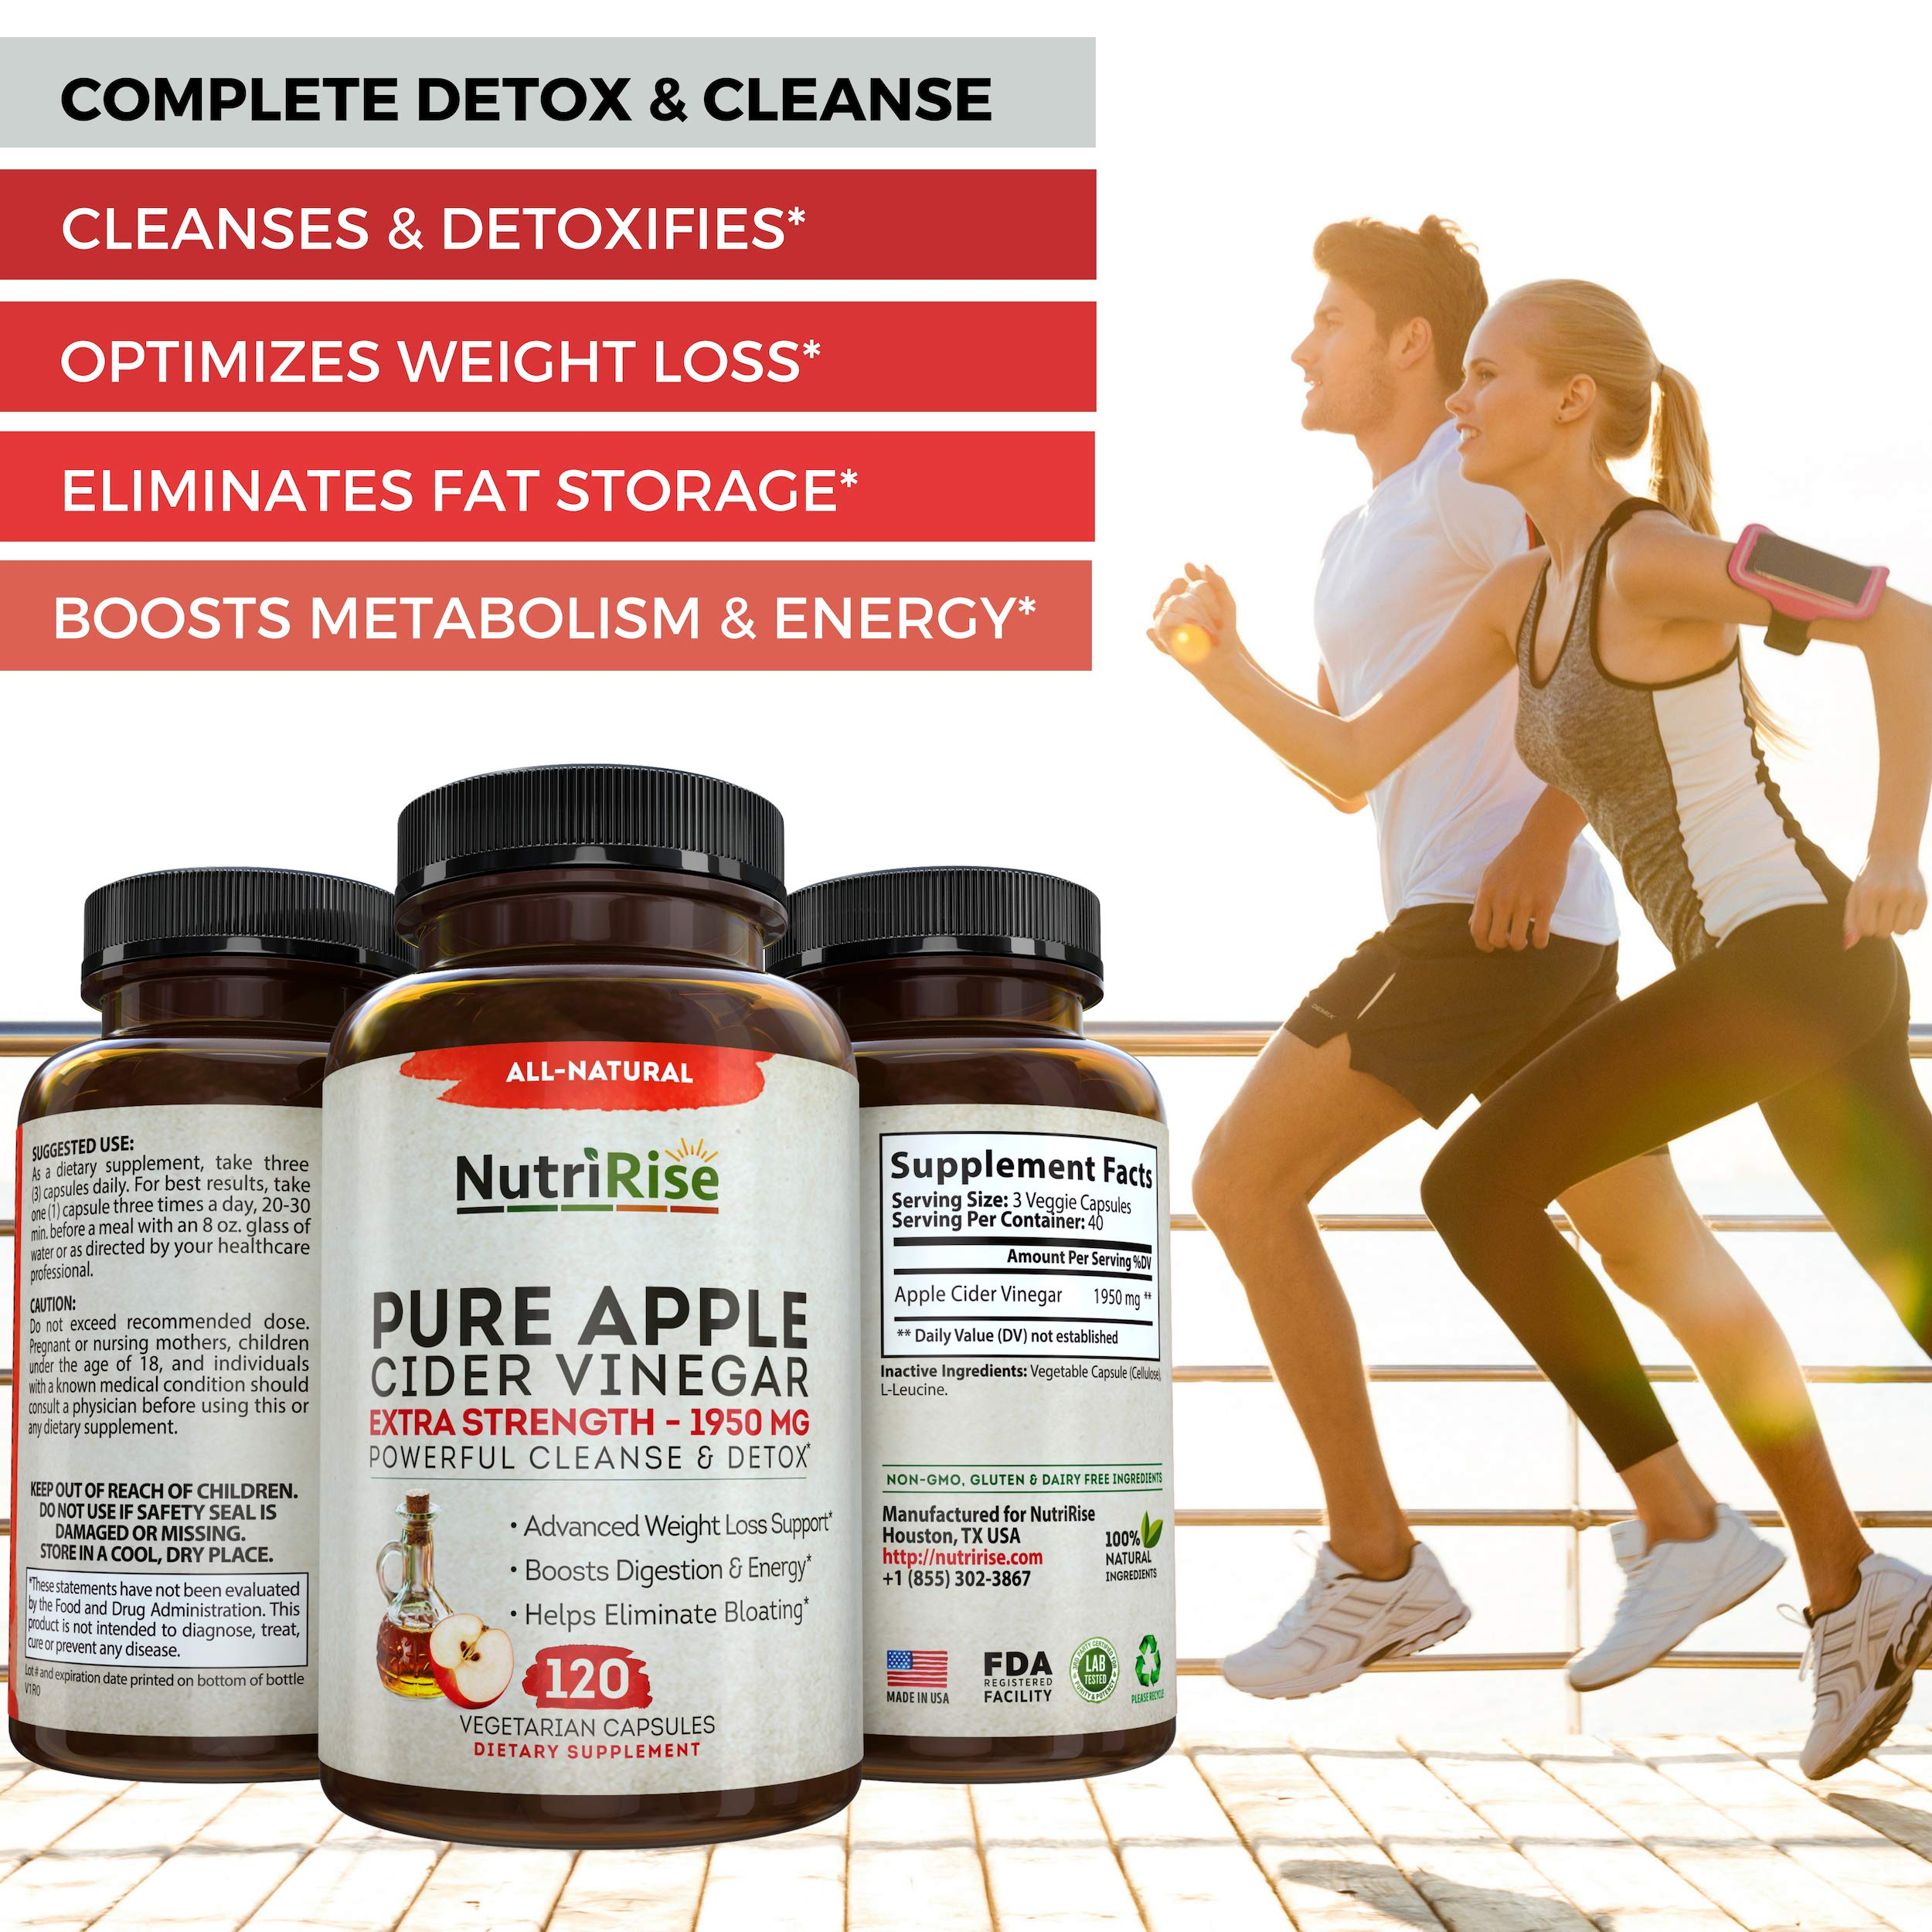 Apple Cider Vinegar Capsules for Weight Loss & Cleanse - 100% Pure Extra Strength 1950mg - 120 Natural Diet Pills for Women & Men for Bloating & Constipation Relief, Digestion & Energy Boost by NutriRise (Image #5)